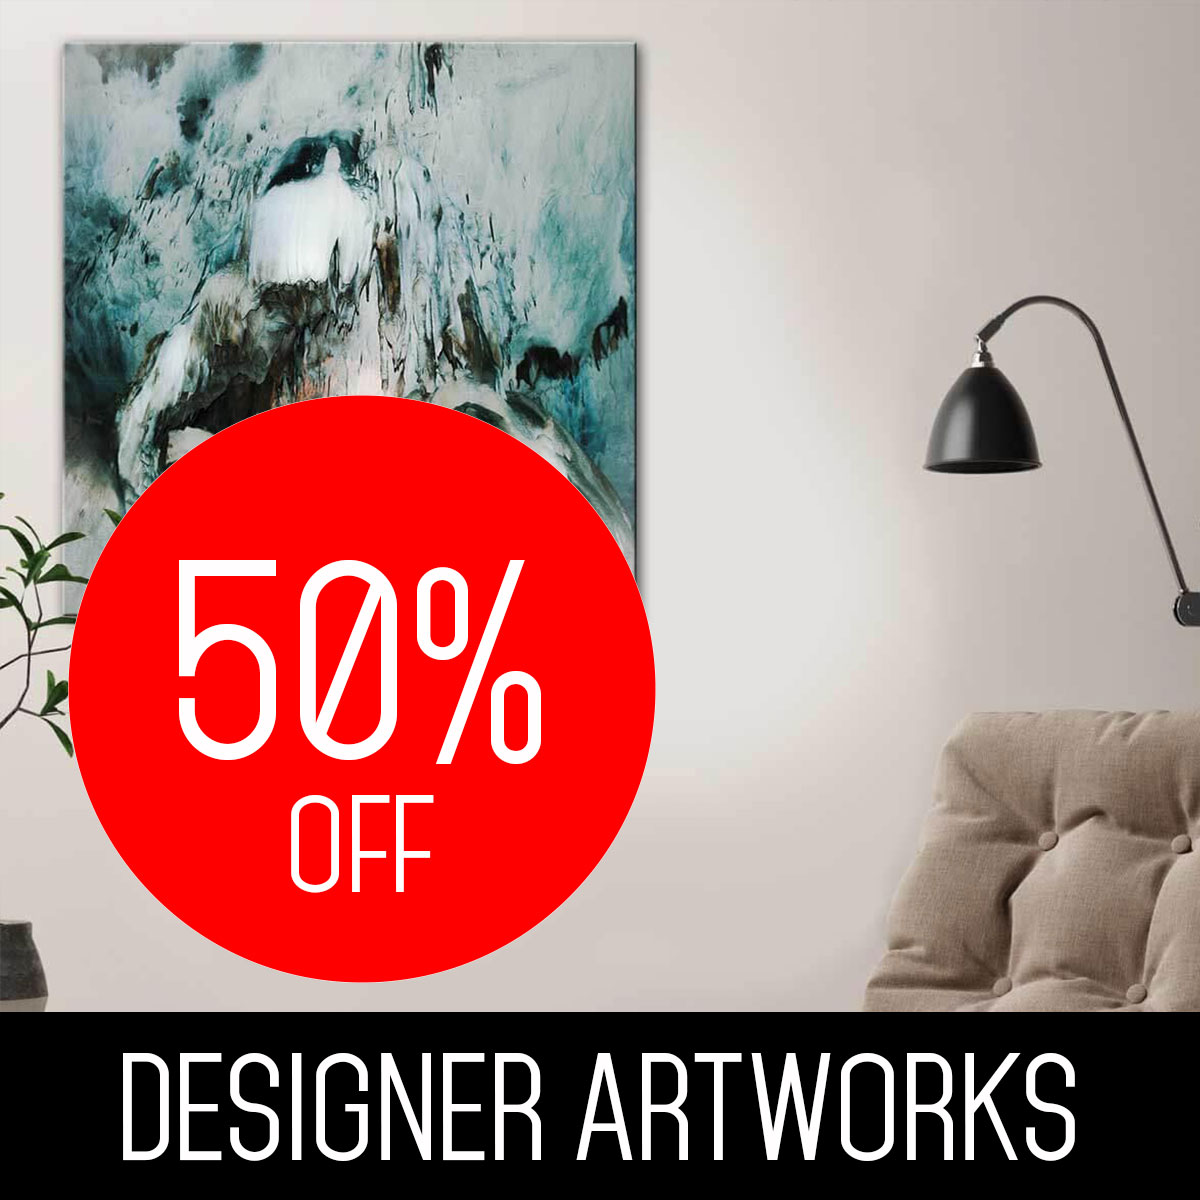 DESIGNER ARTWORKS CANVAS PRINTS